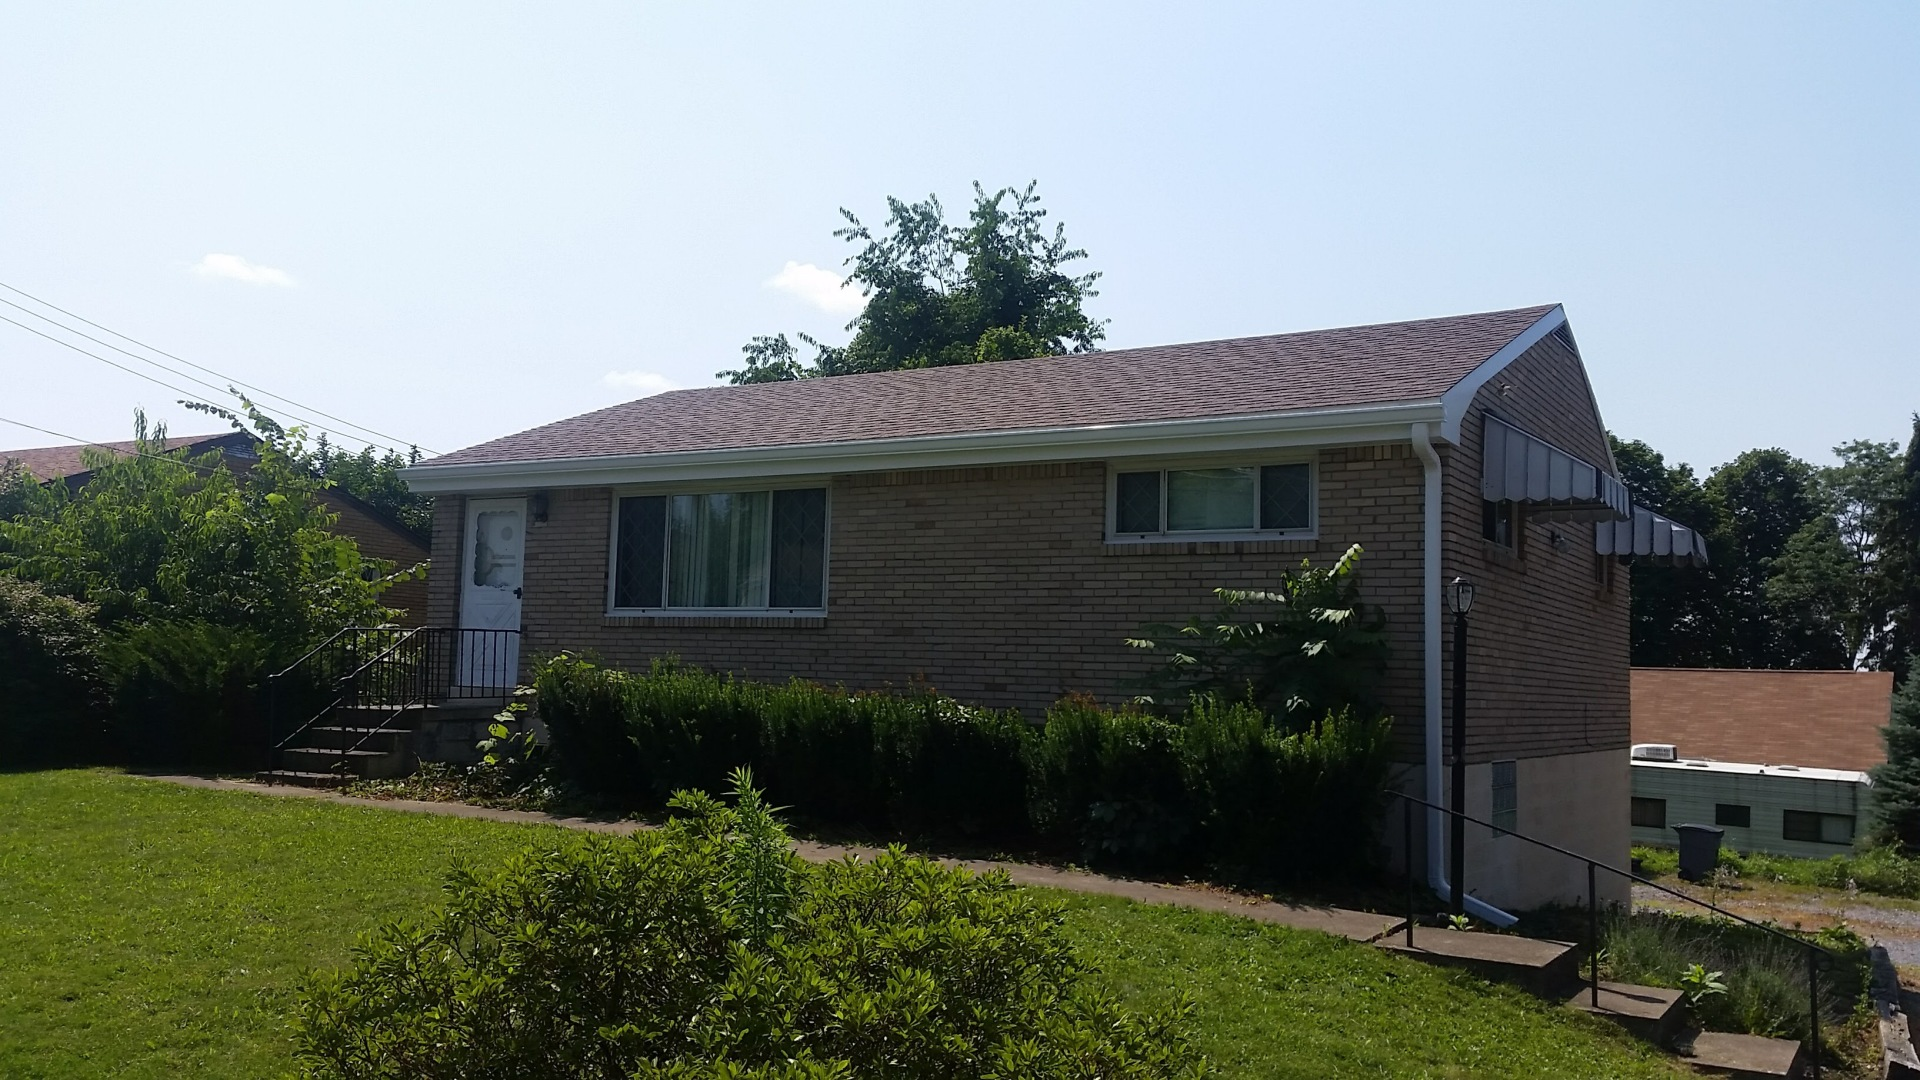 Owens Corning Duration Brownwood (new soffit, fascia, gutters)